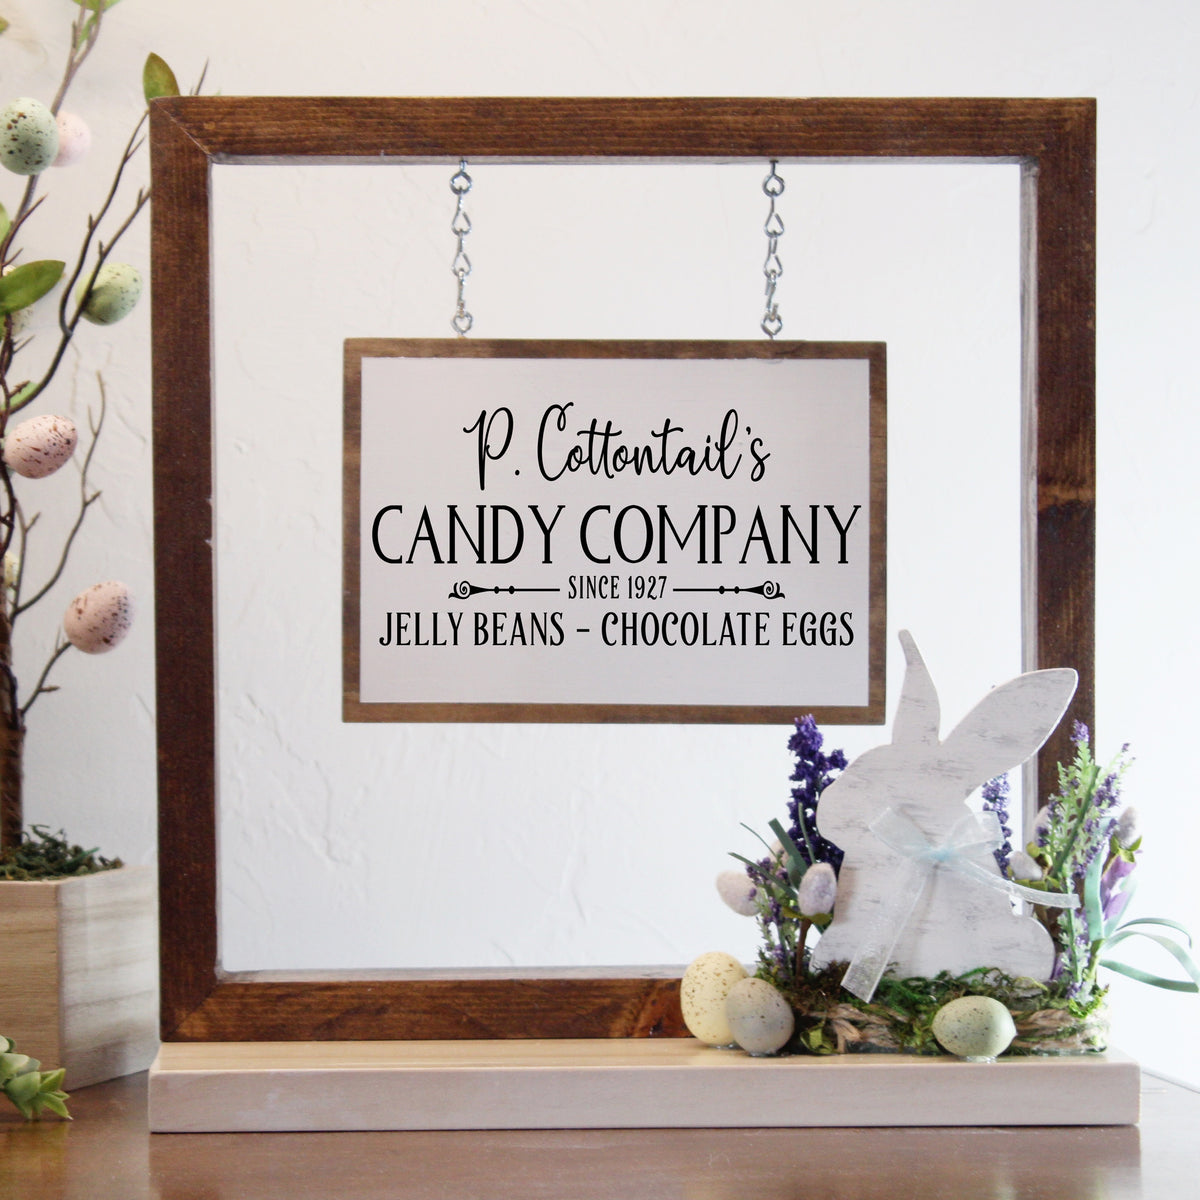 P. Cottontail's Candy Company